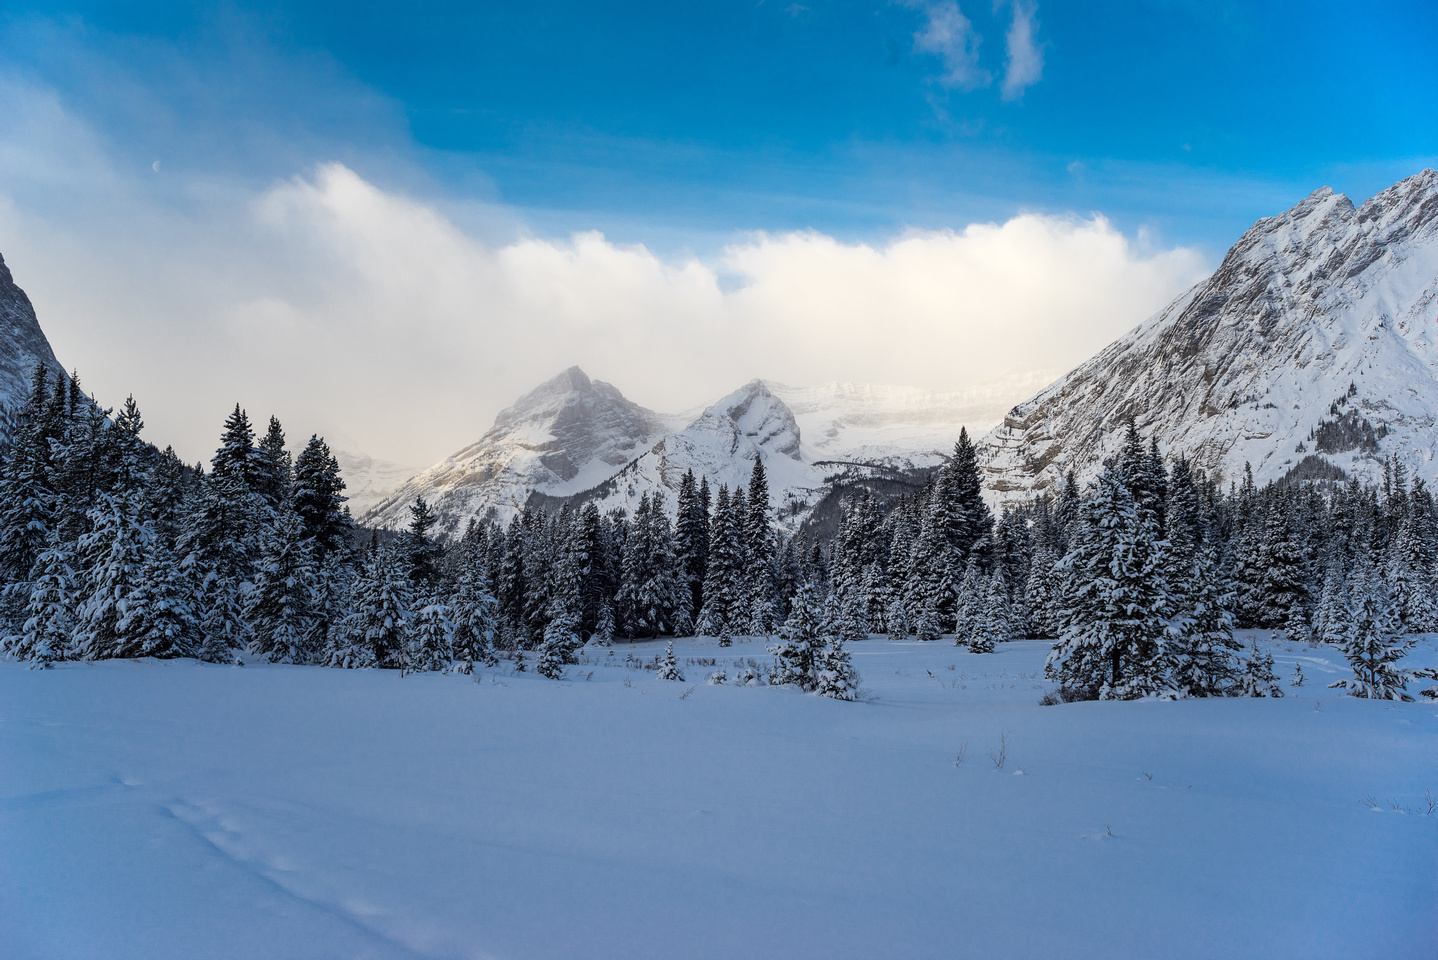 Snowshoeing back towards the Kananaskis Lakes.